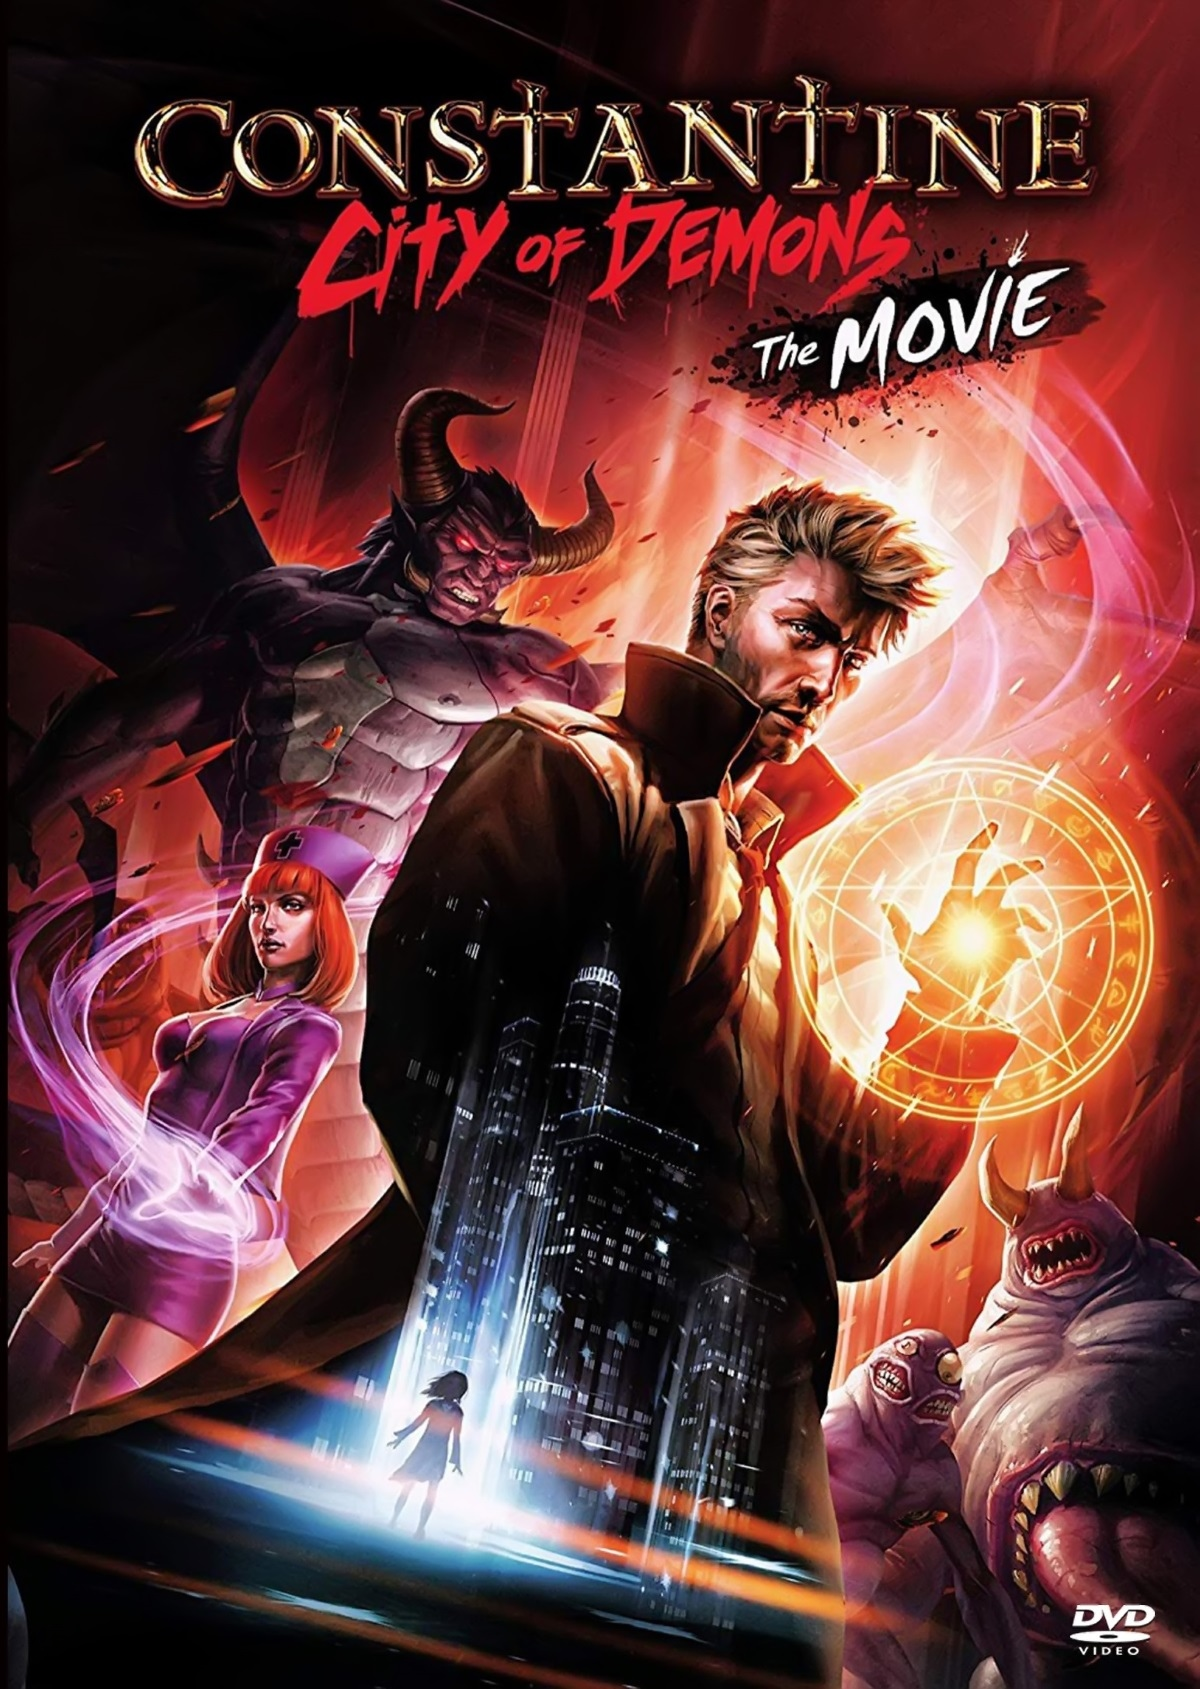 Constantine City of Demons: The Movie